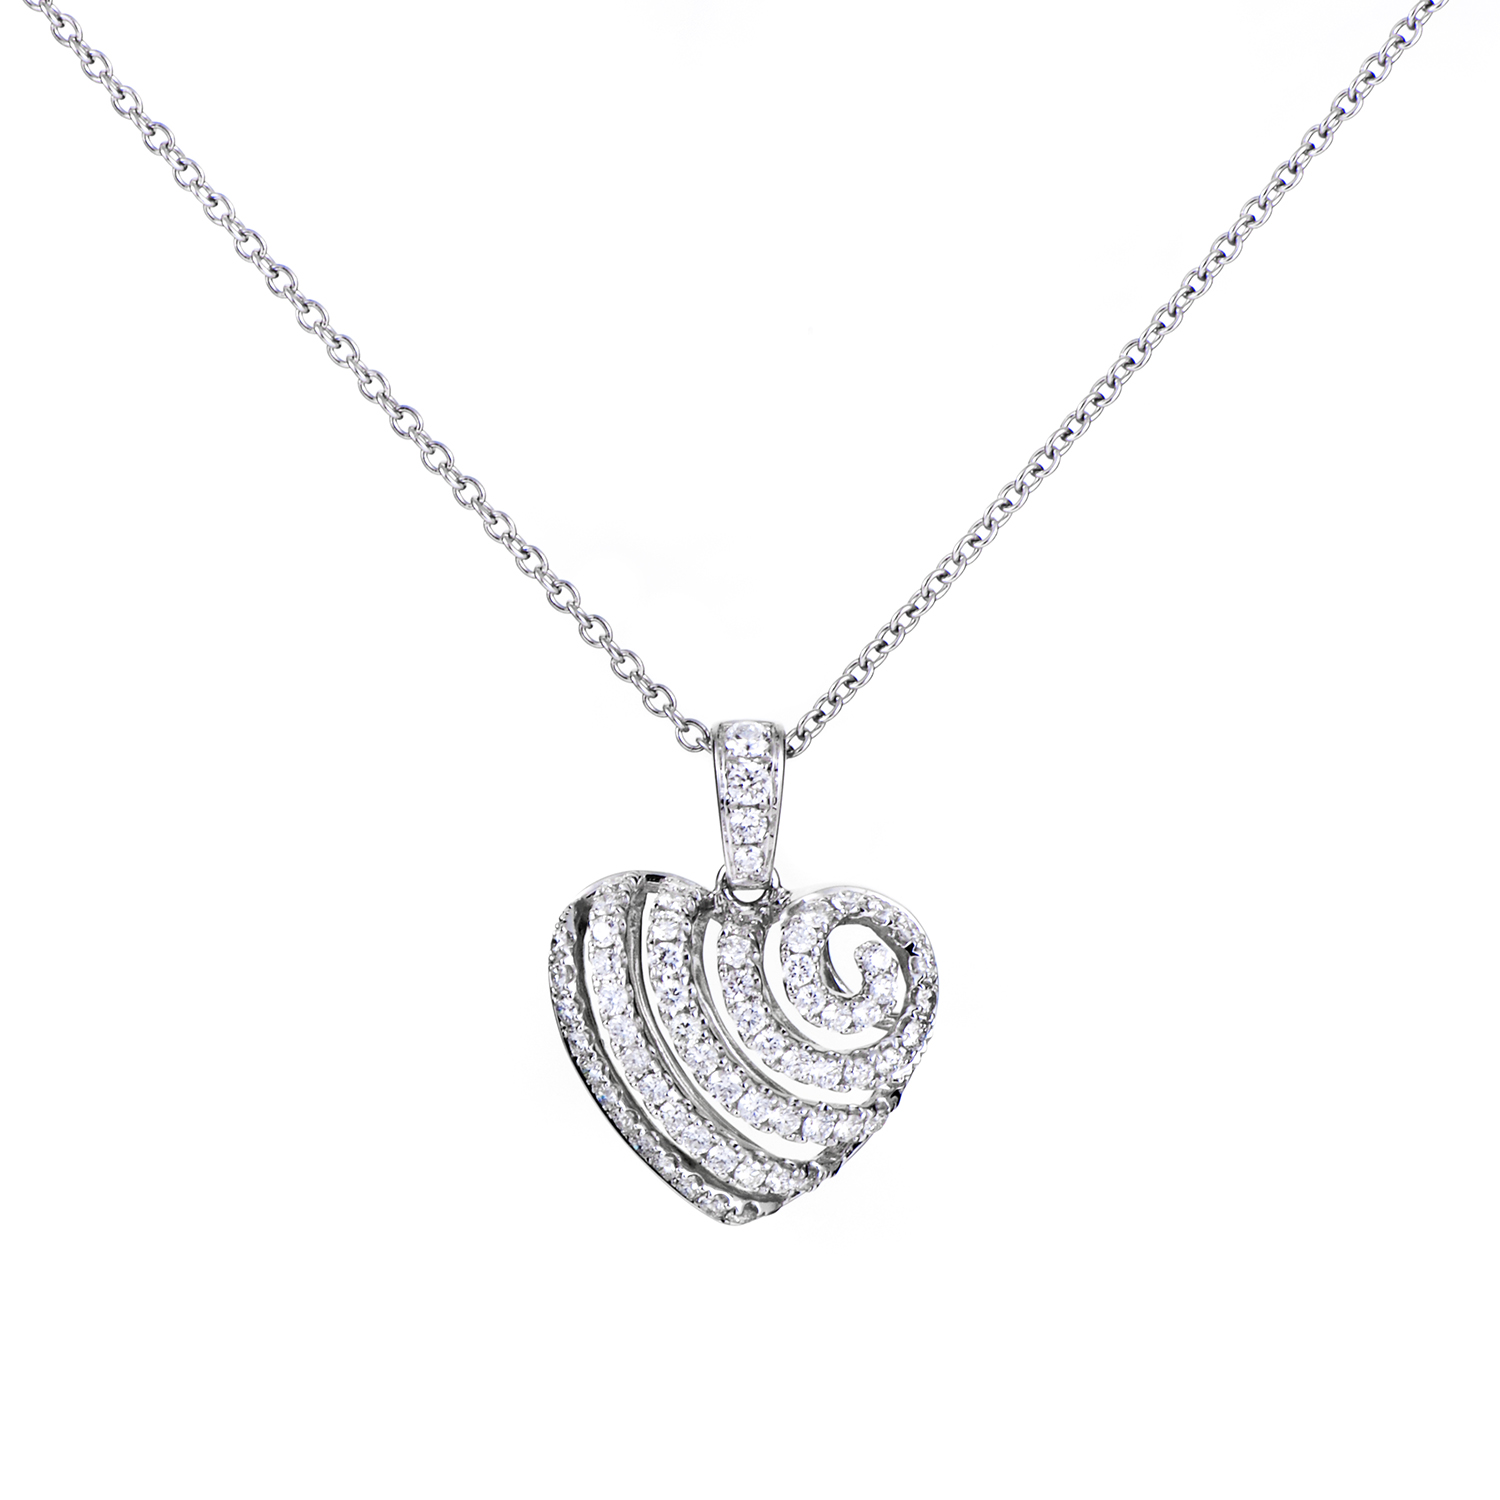 Women's 18K White Gold Diamond Ripple Heart Pendant Necklace